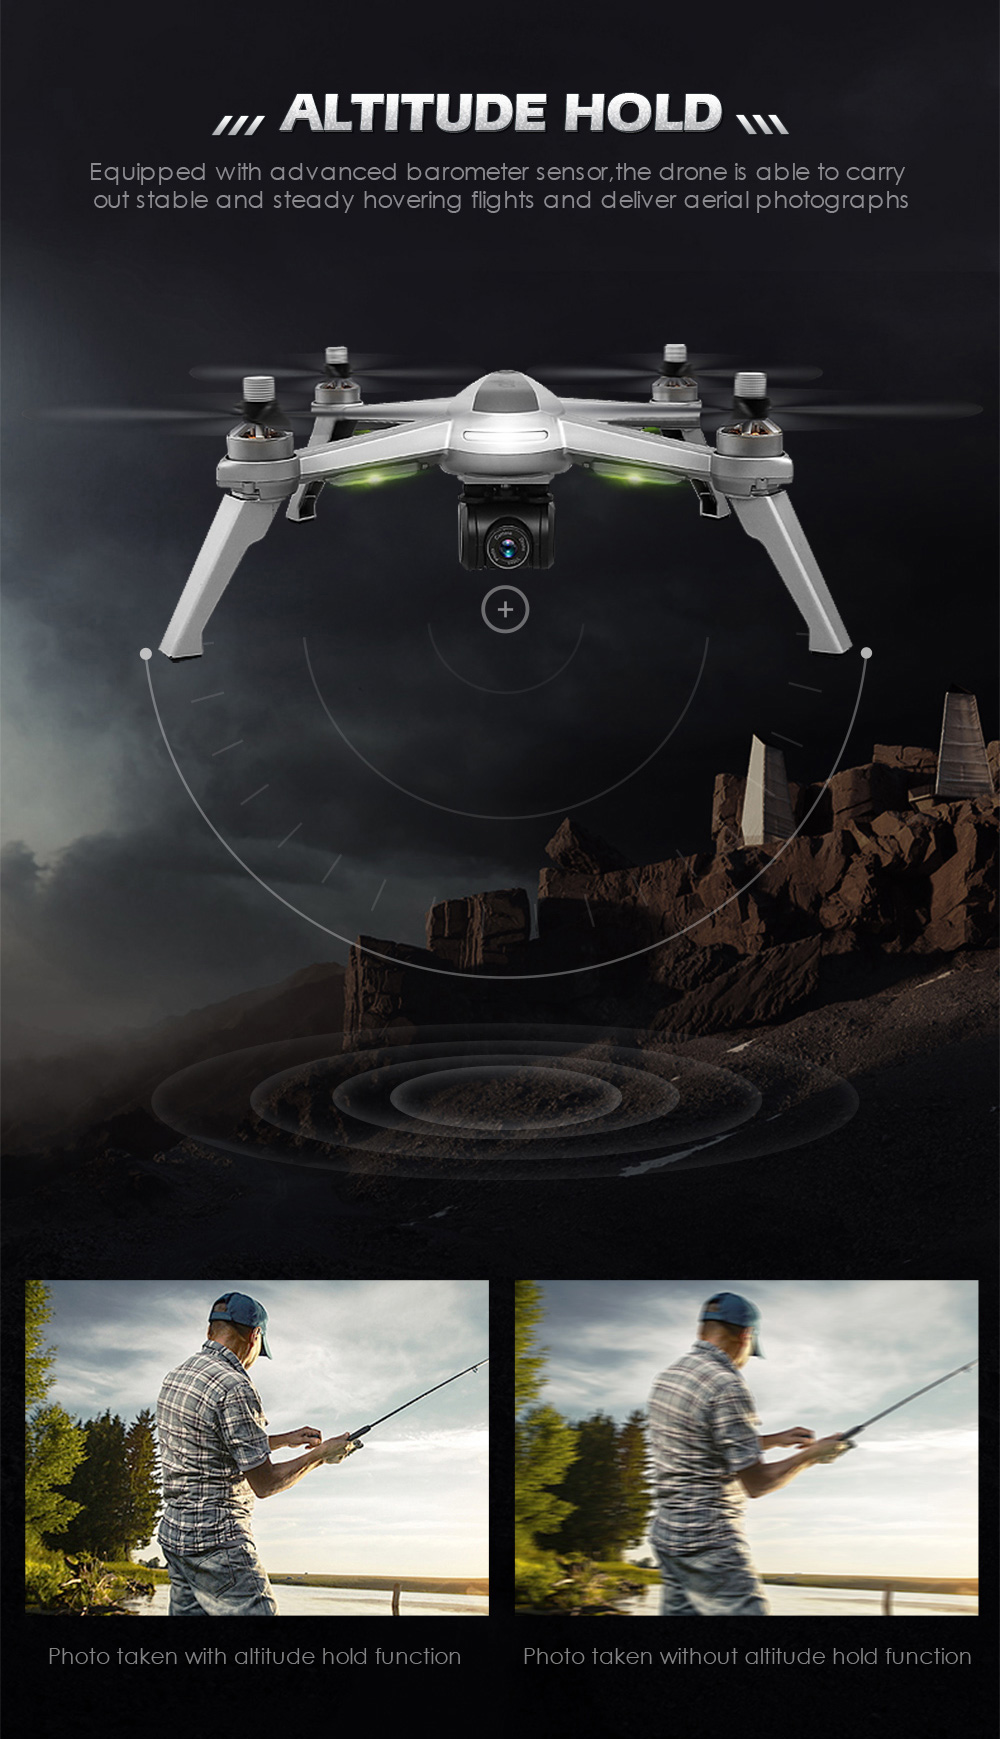 JJRC JJPRO X5 RC Drone 5G WiFi FPV Drones GPS Positioning Altitude Hold 1080P Camera Point of Interesting Follow Brushless Motor 15